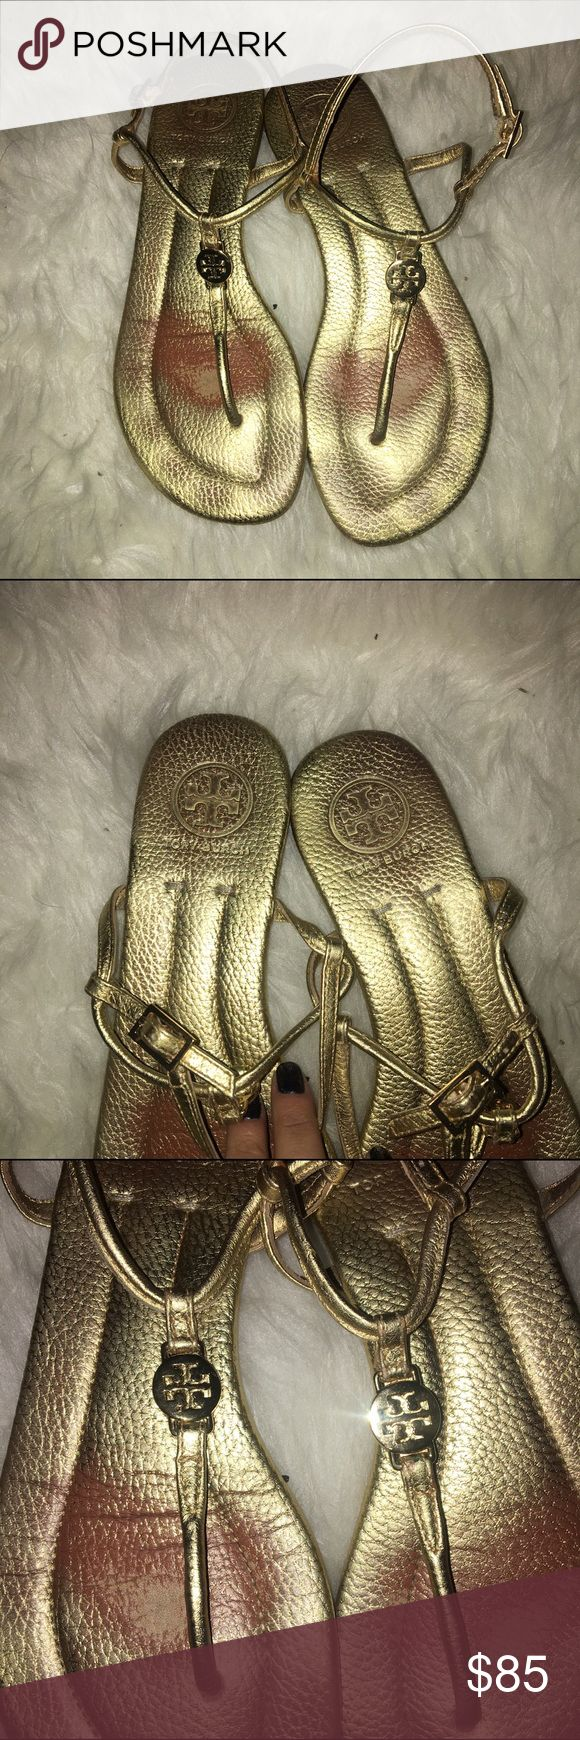 TORY BURCH gold metallic emmy t strap sandal excellent condition; some wear on the insoles, not noticeable when worn. gold metallic leather with sig logo. this style has stopped being made and these are a rare find. soles are near perfect. Tory Burch Shoes Sandals